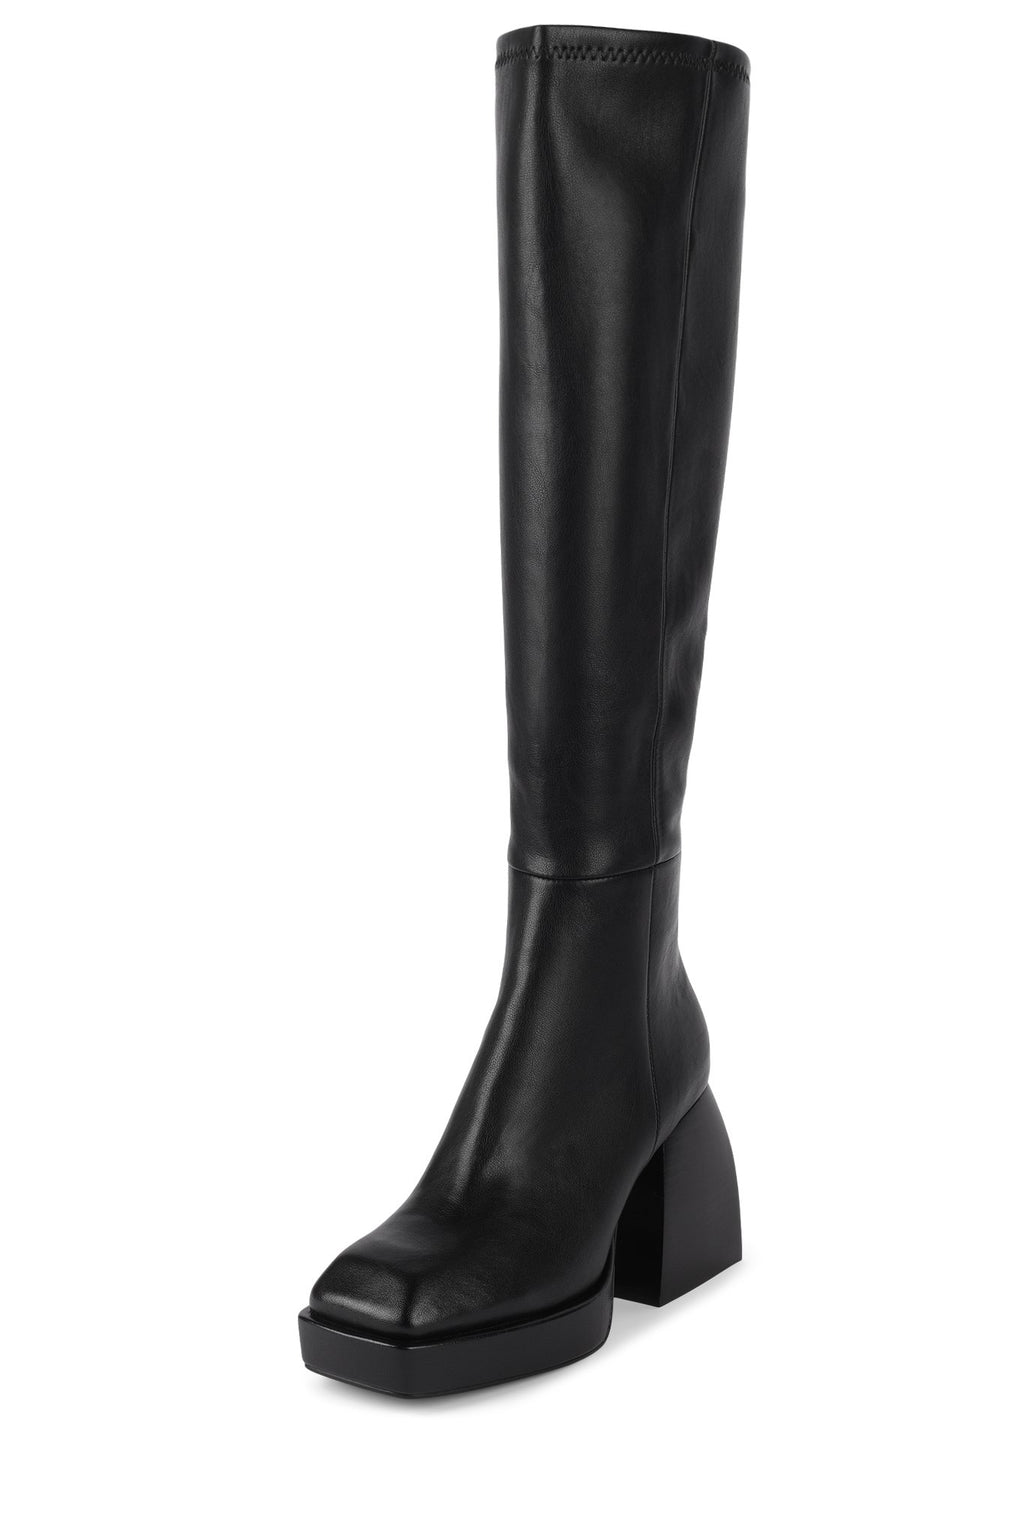 DAUPHIN Knee-High Boot STRATEGY